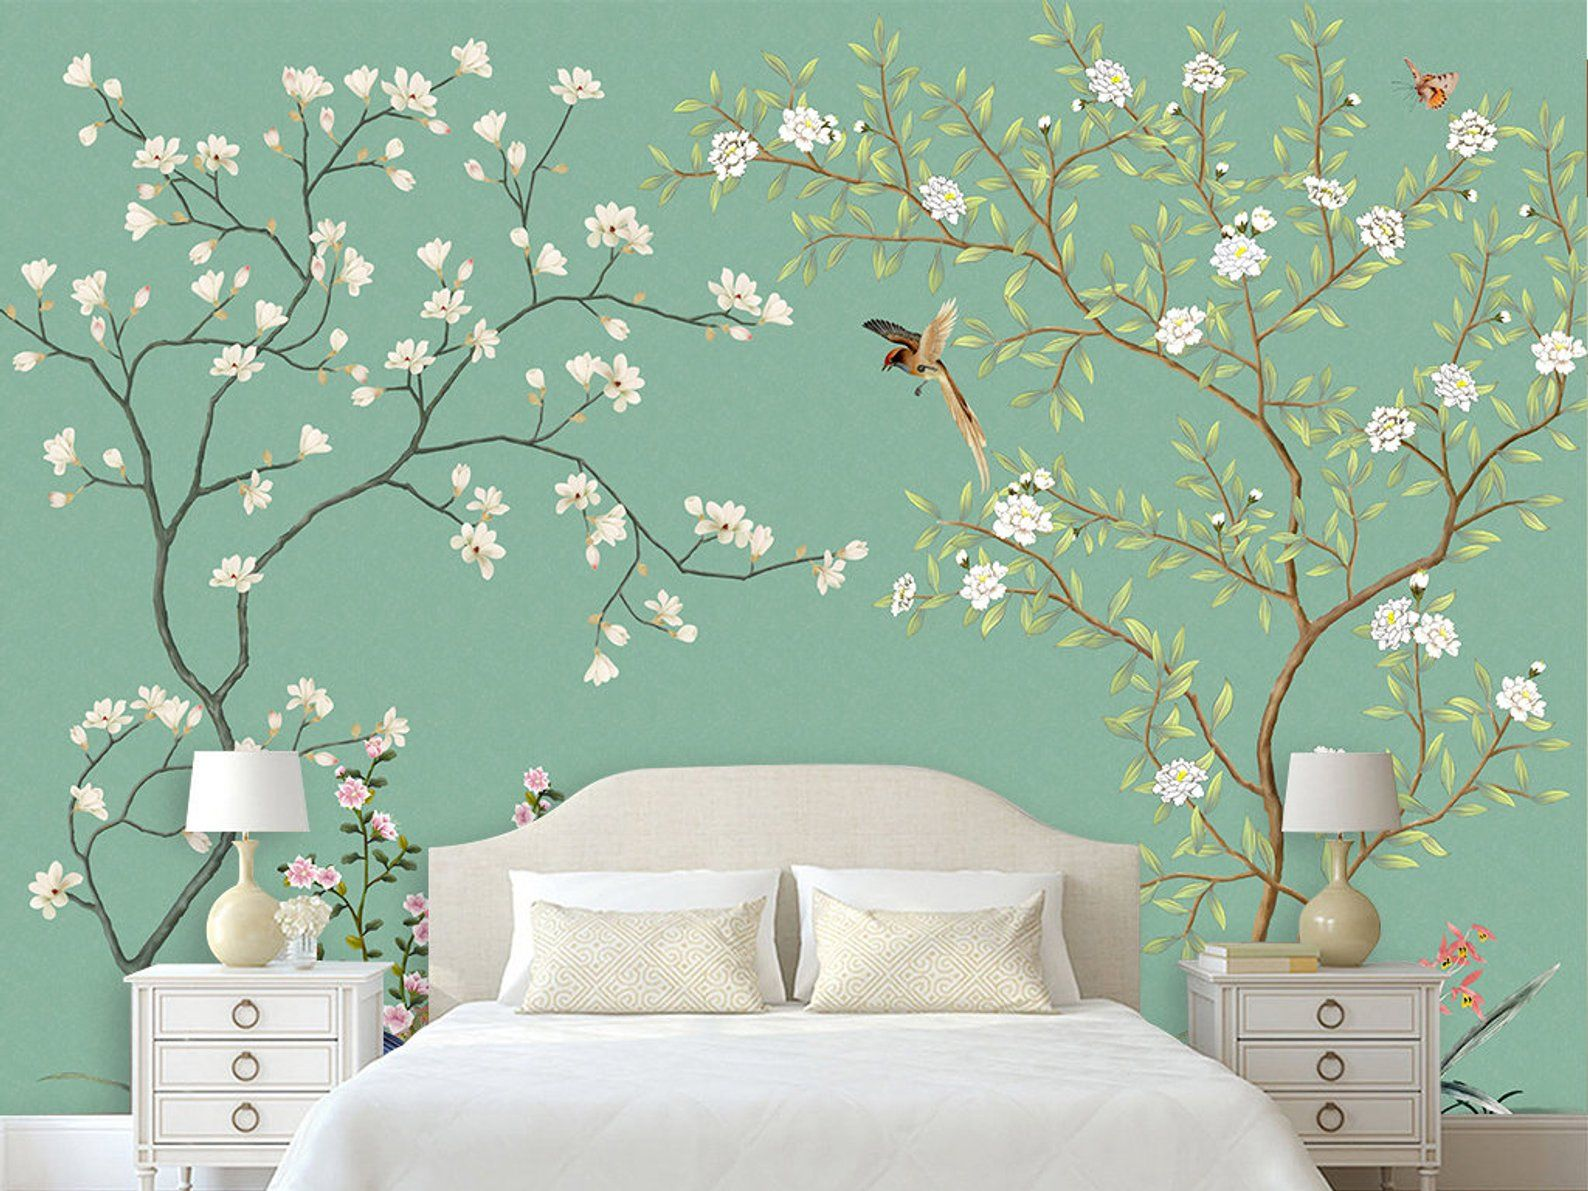 Chinoiserie Brushwork Light Green Background Flowers and